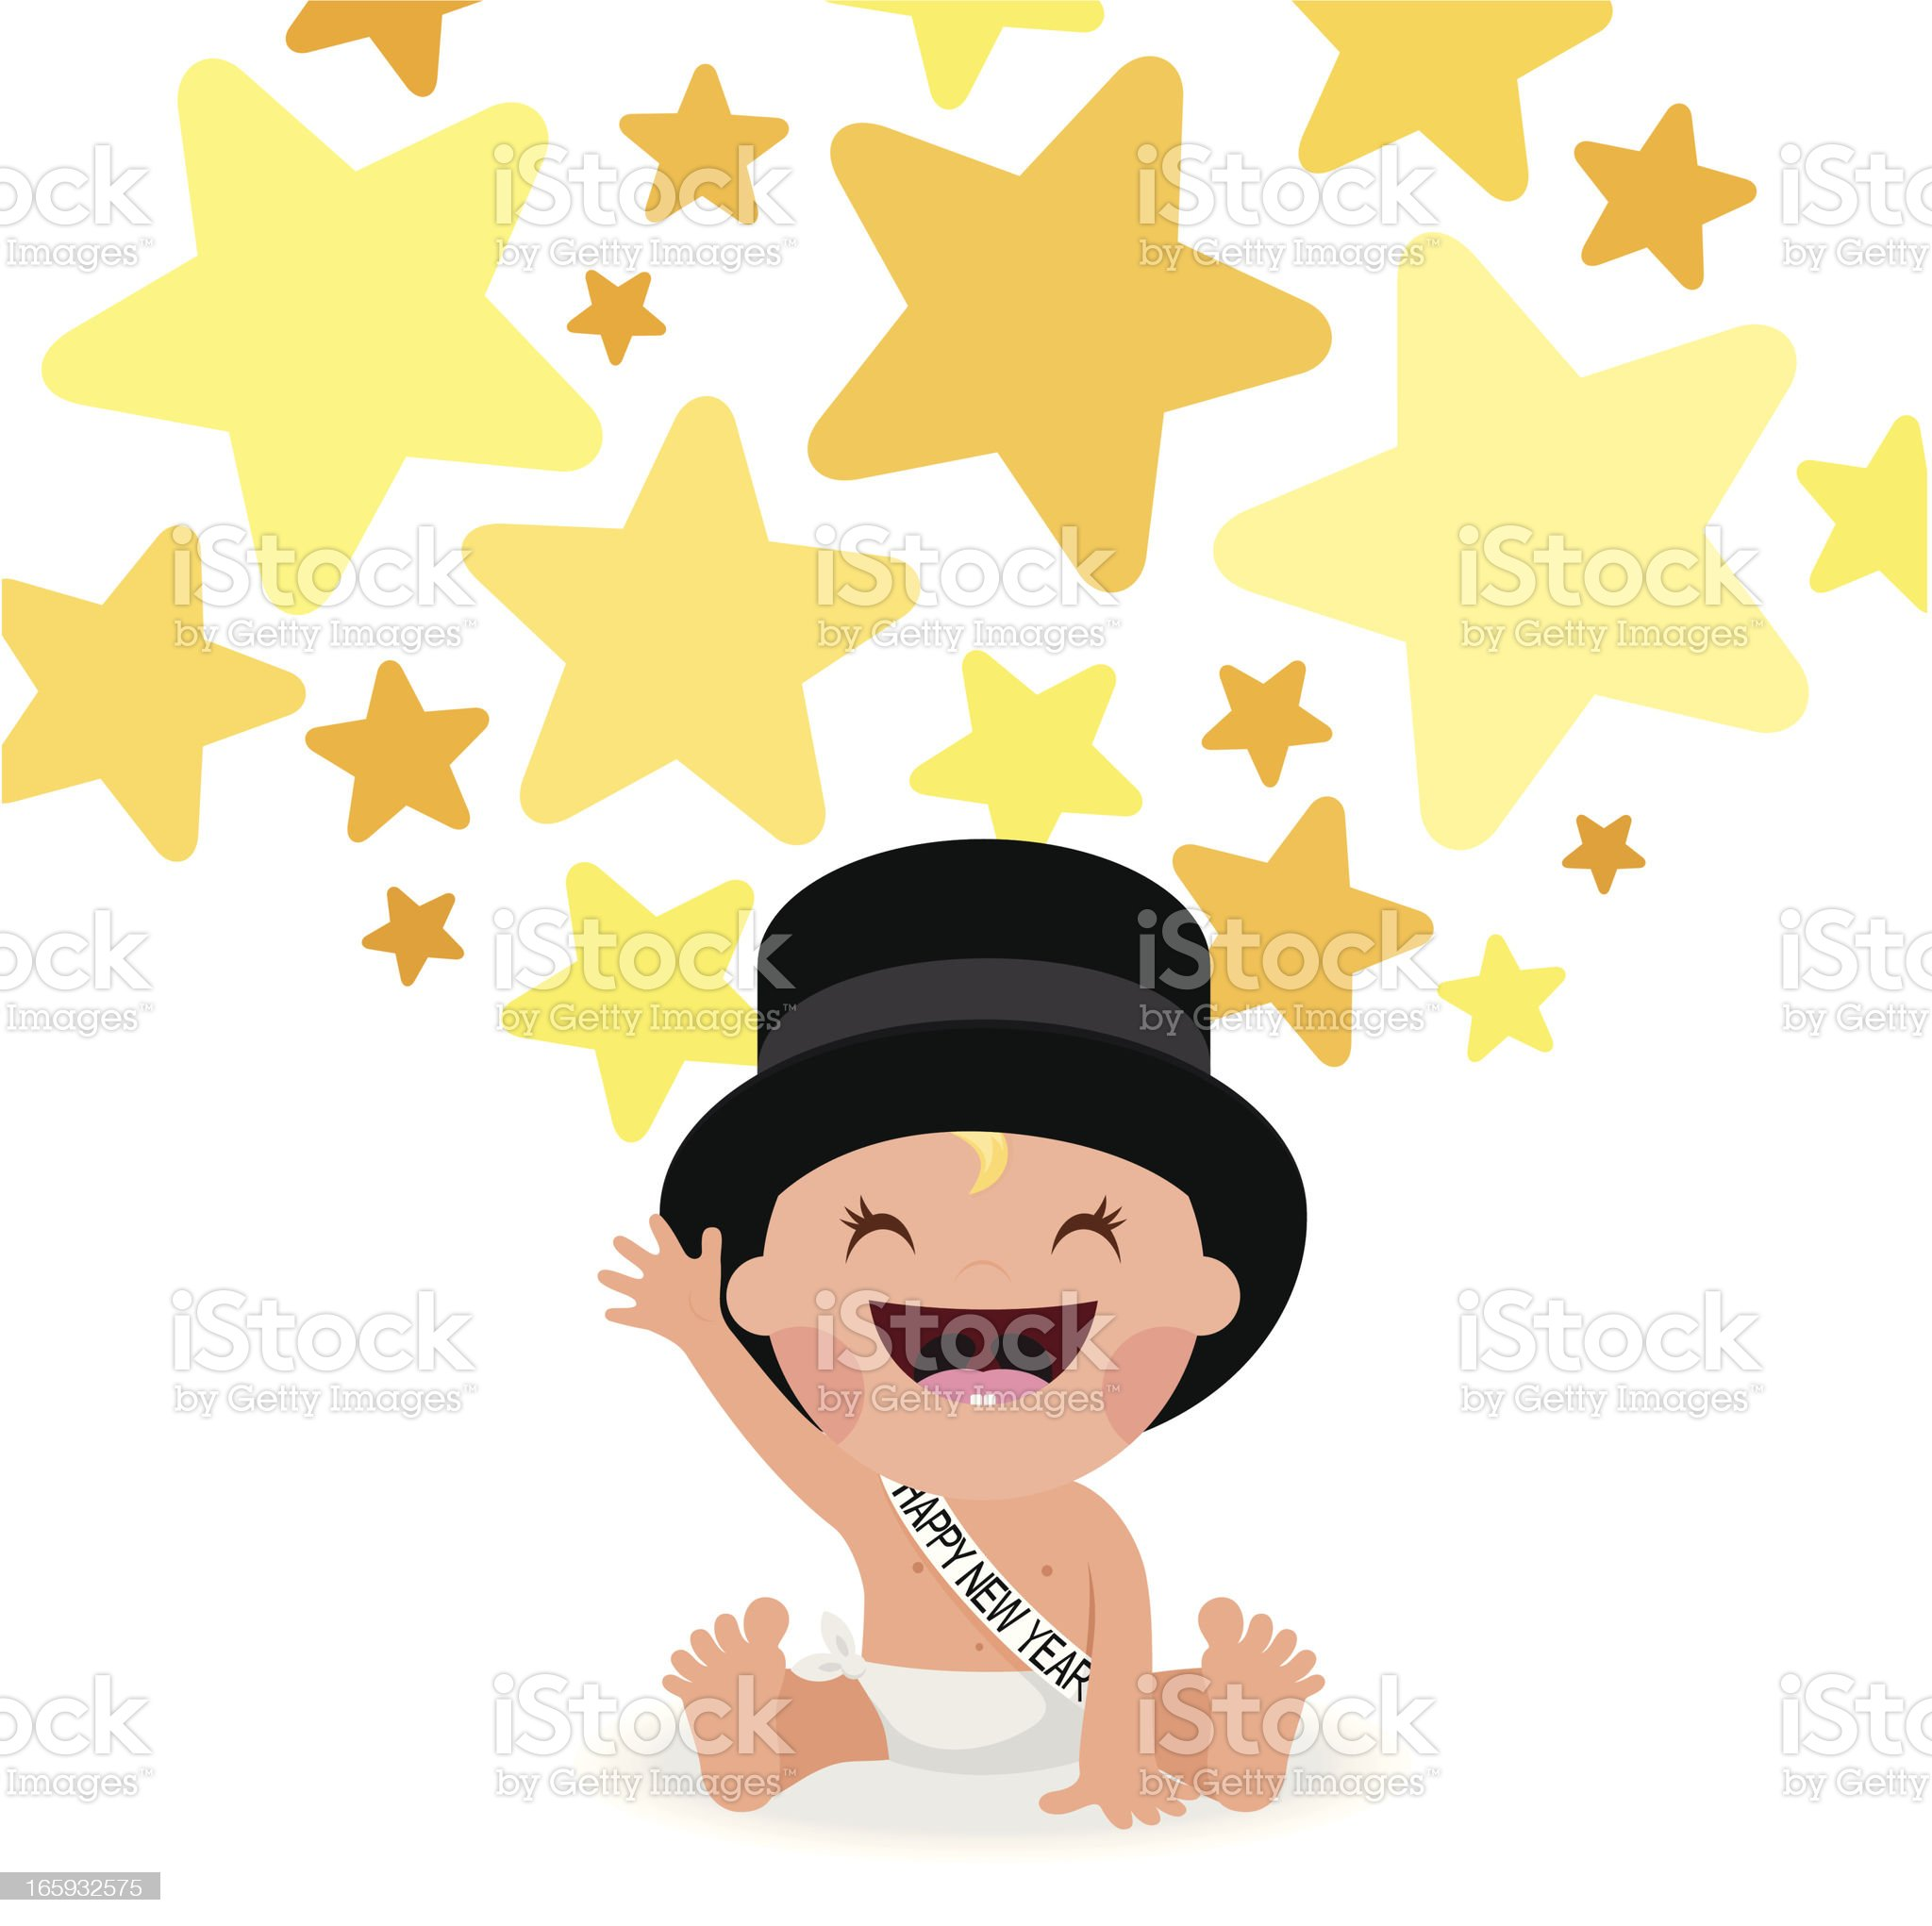 add happynewyear stars tophat baby illustration vector party myillo royalty-free stock vector art